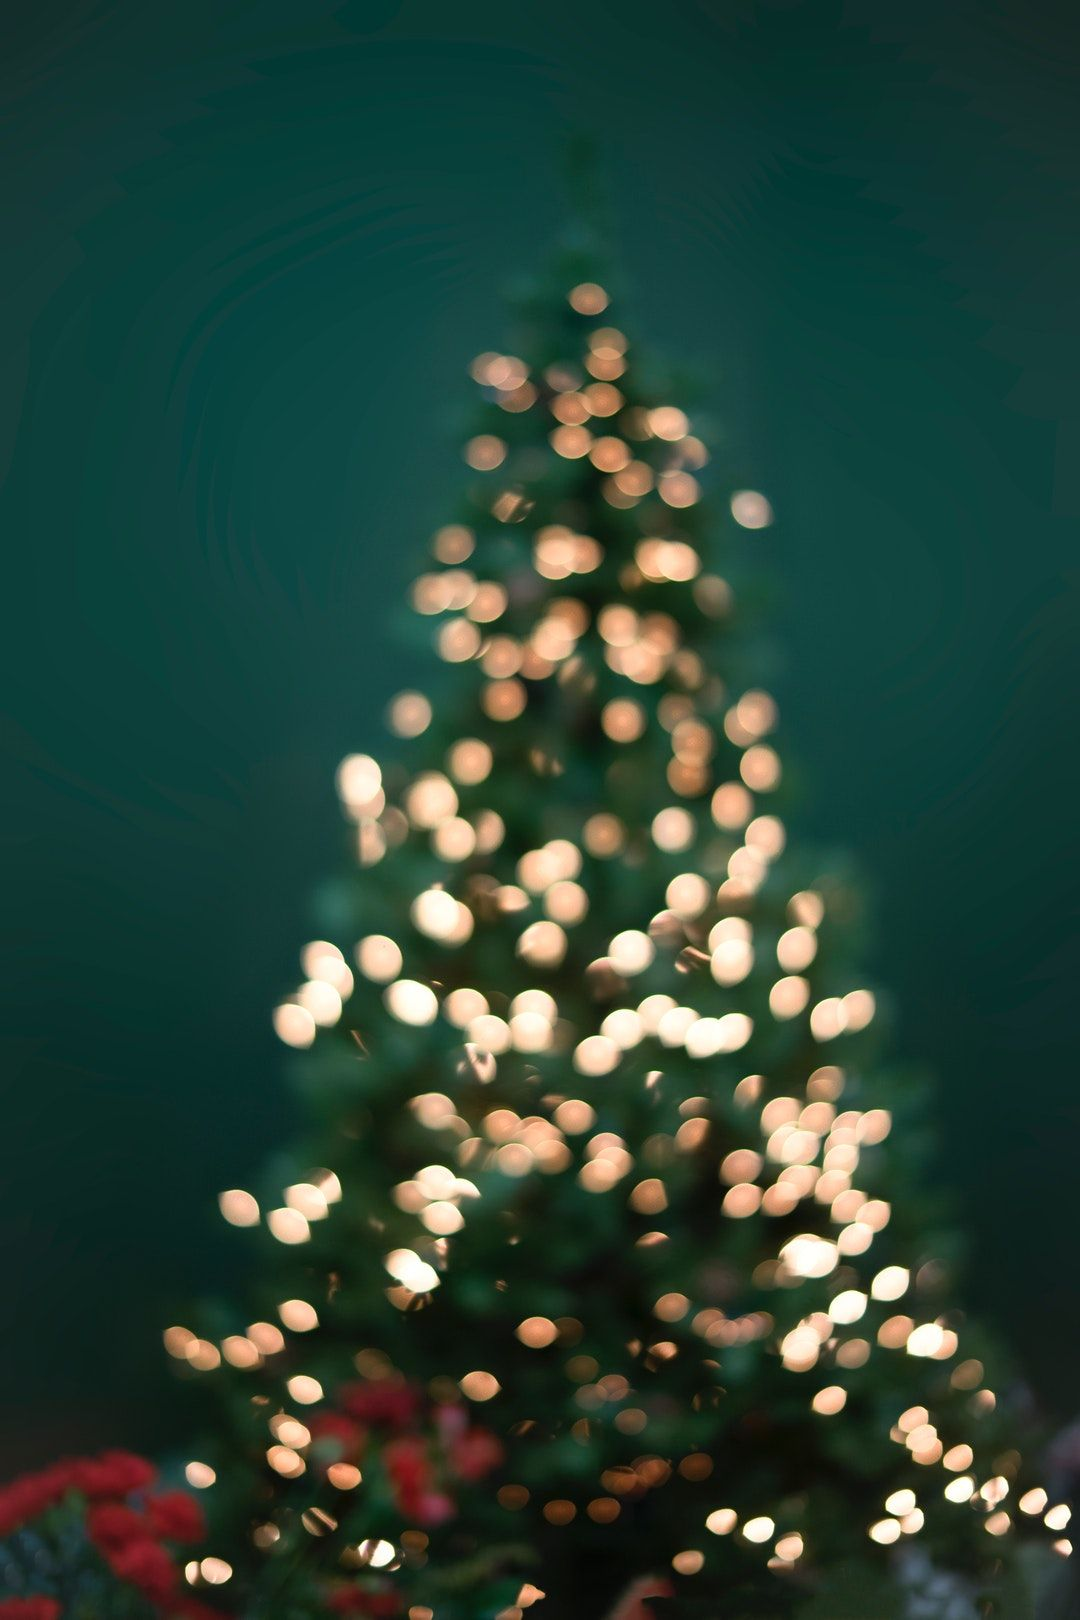 1080x1620 Christmas Tree Pictures [HQ]   Download Free Images on Unsplash